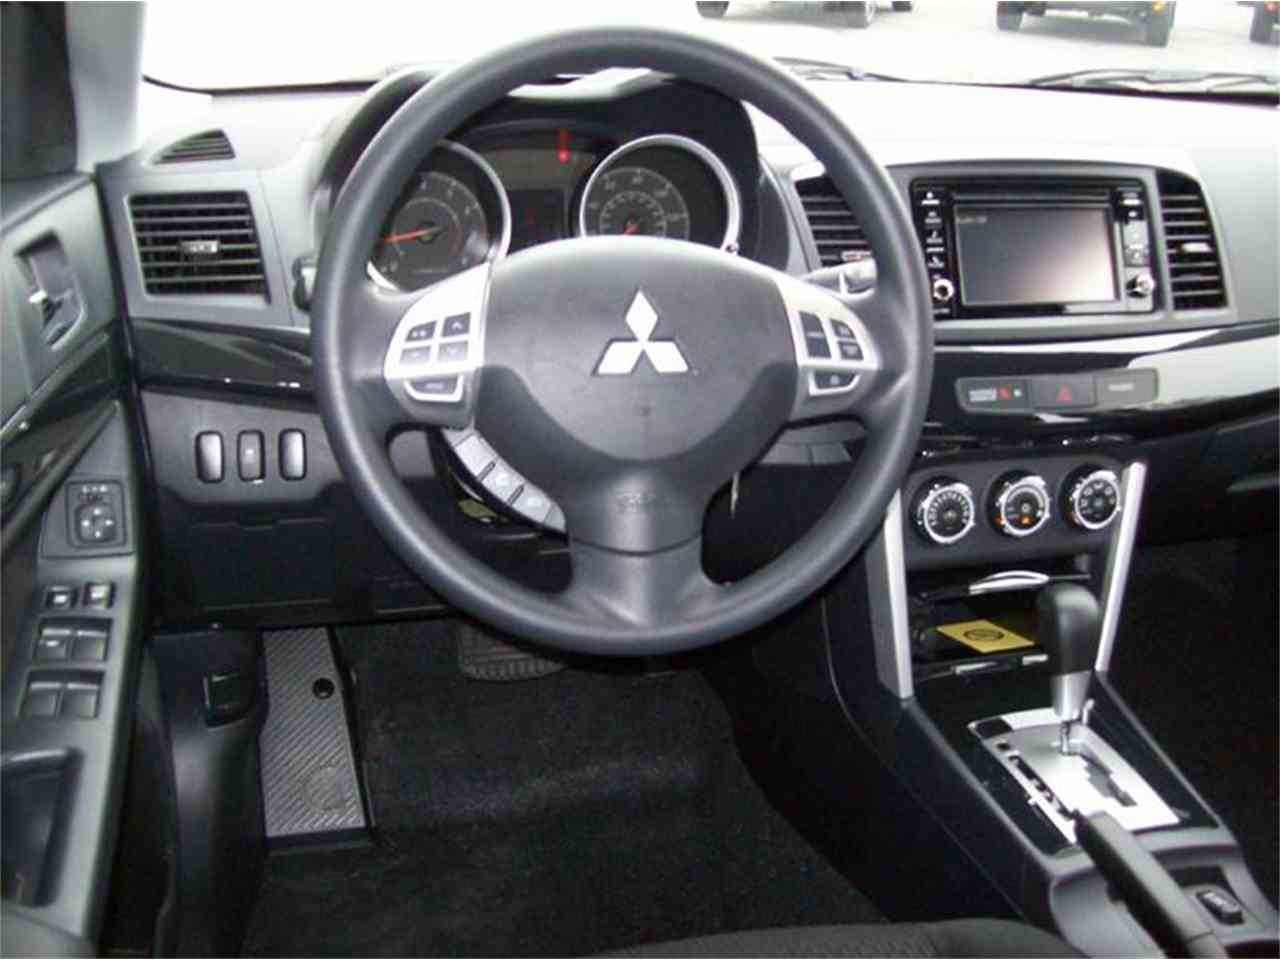 Large Picture of 2017 Mitsubishi Lancer - $17,489.00 Offered by Verhage Mitsubishi - JSPQ